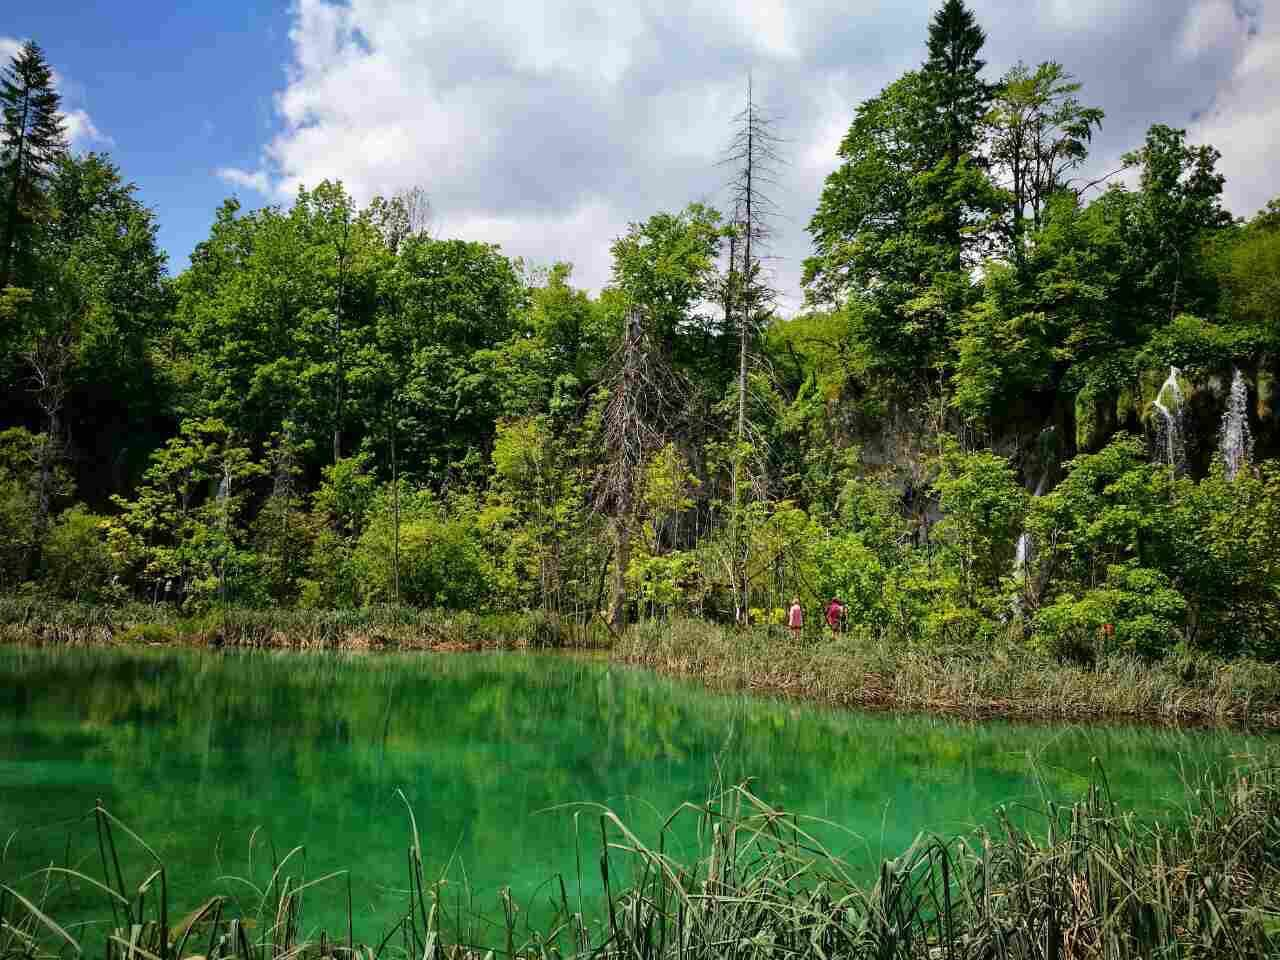 Green trees reflecting in a lake at Plitvice Lakes in Croatia